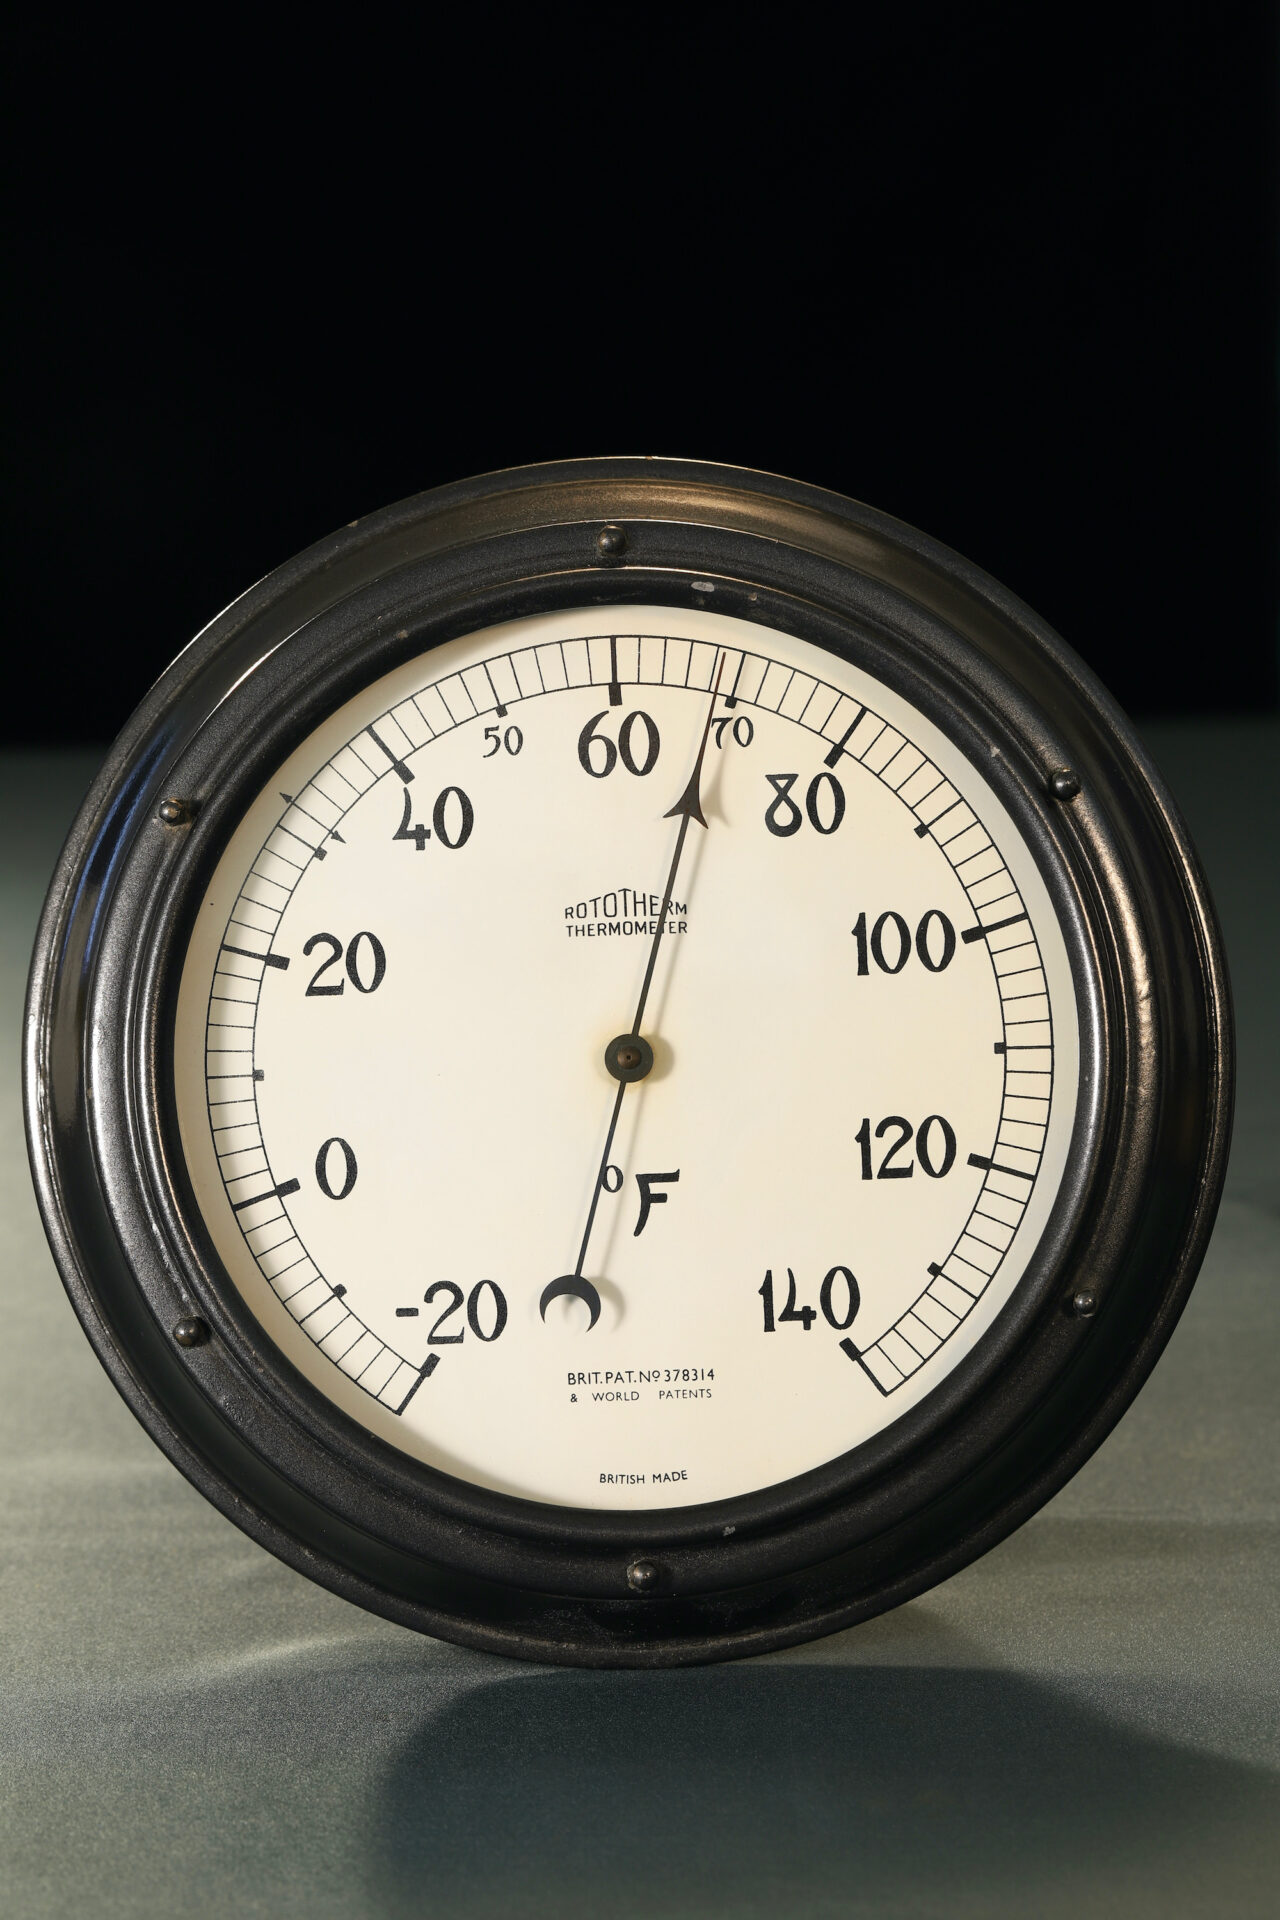 Image of Rototherm Thermometer c1932